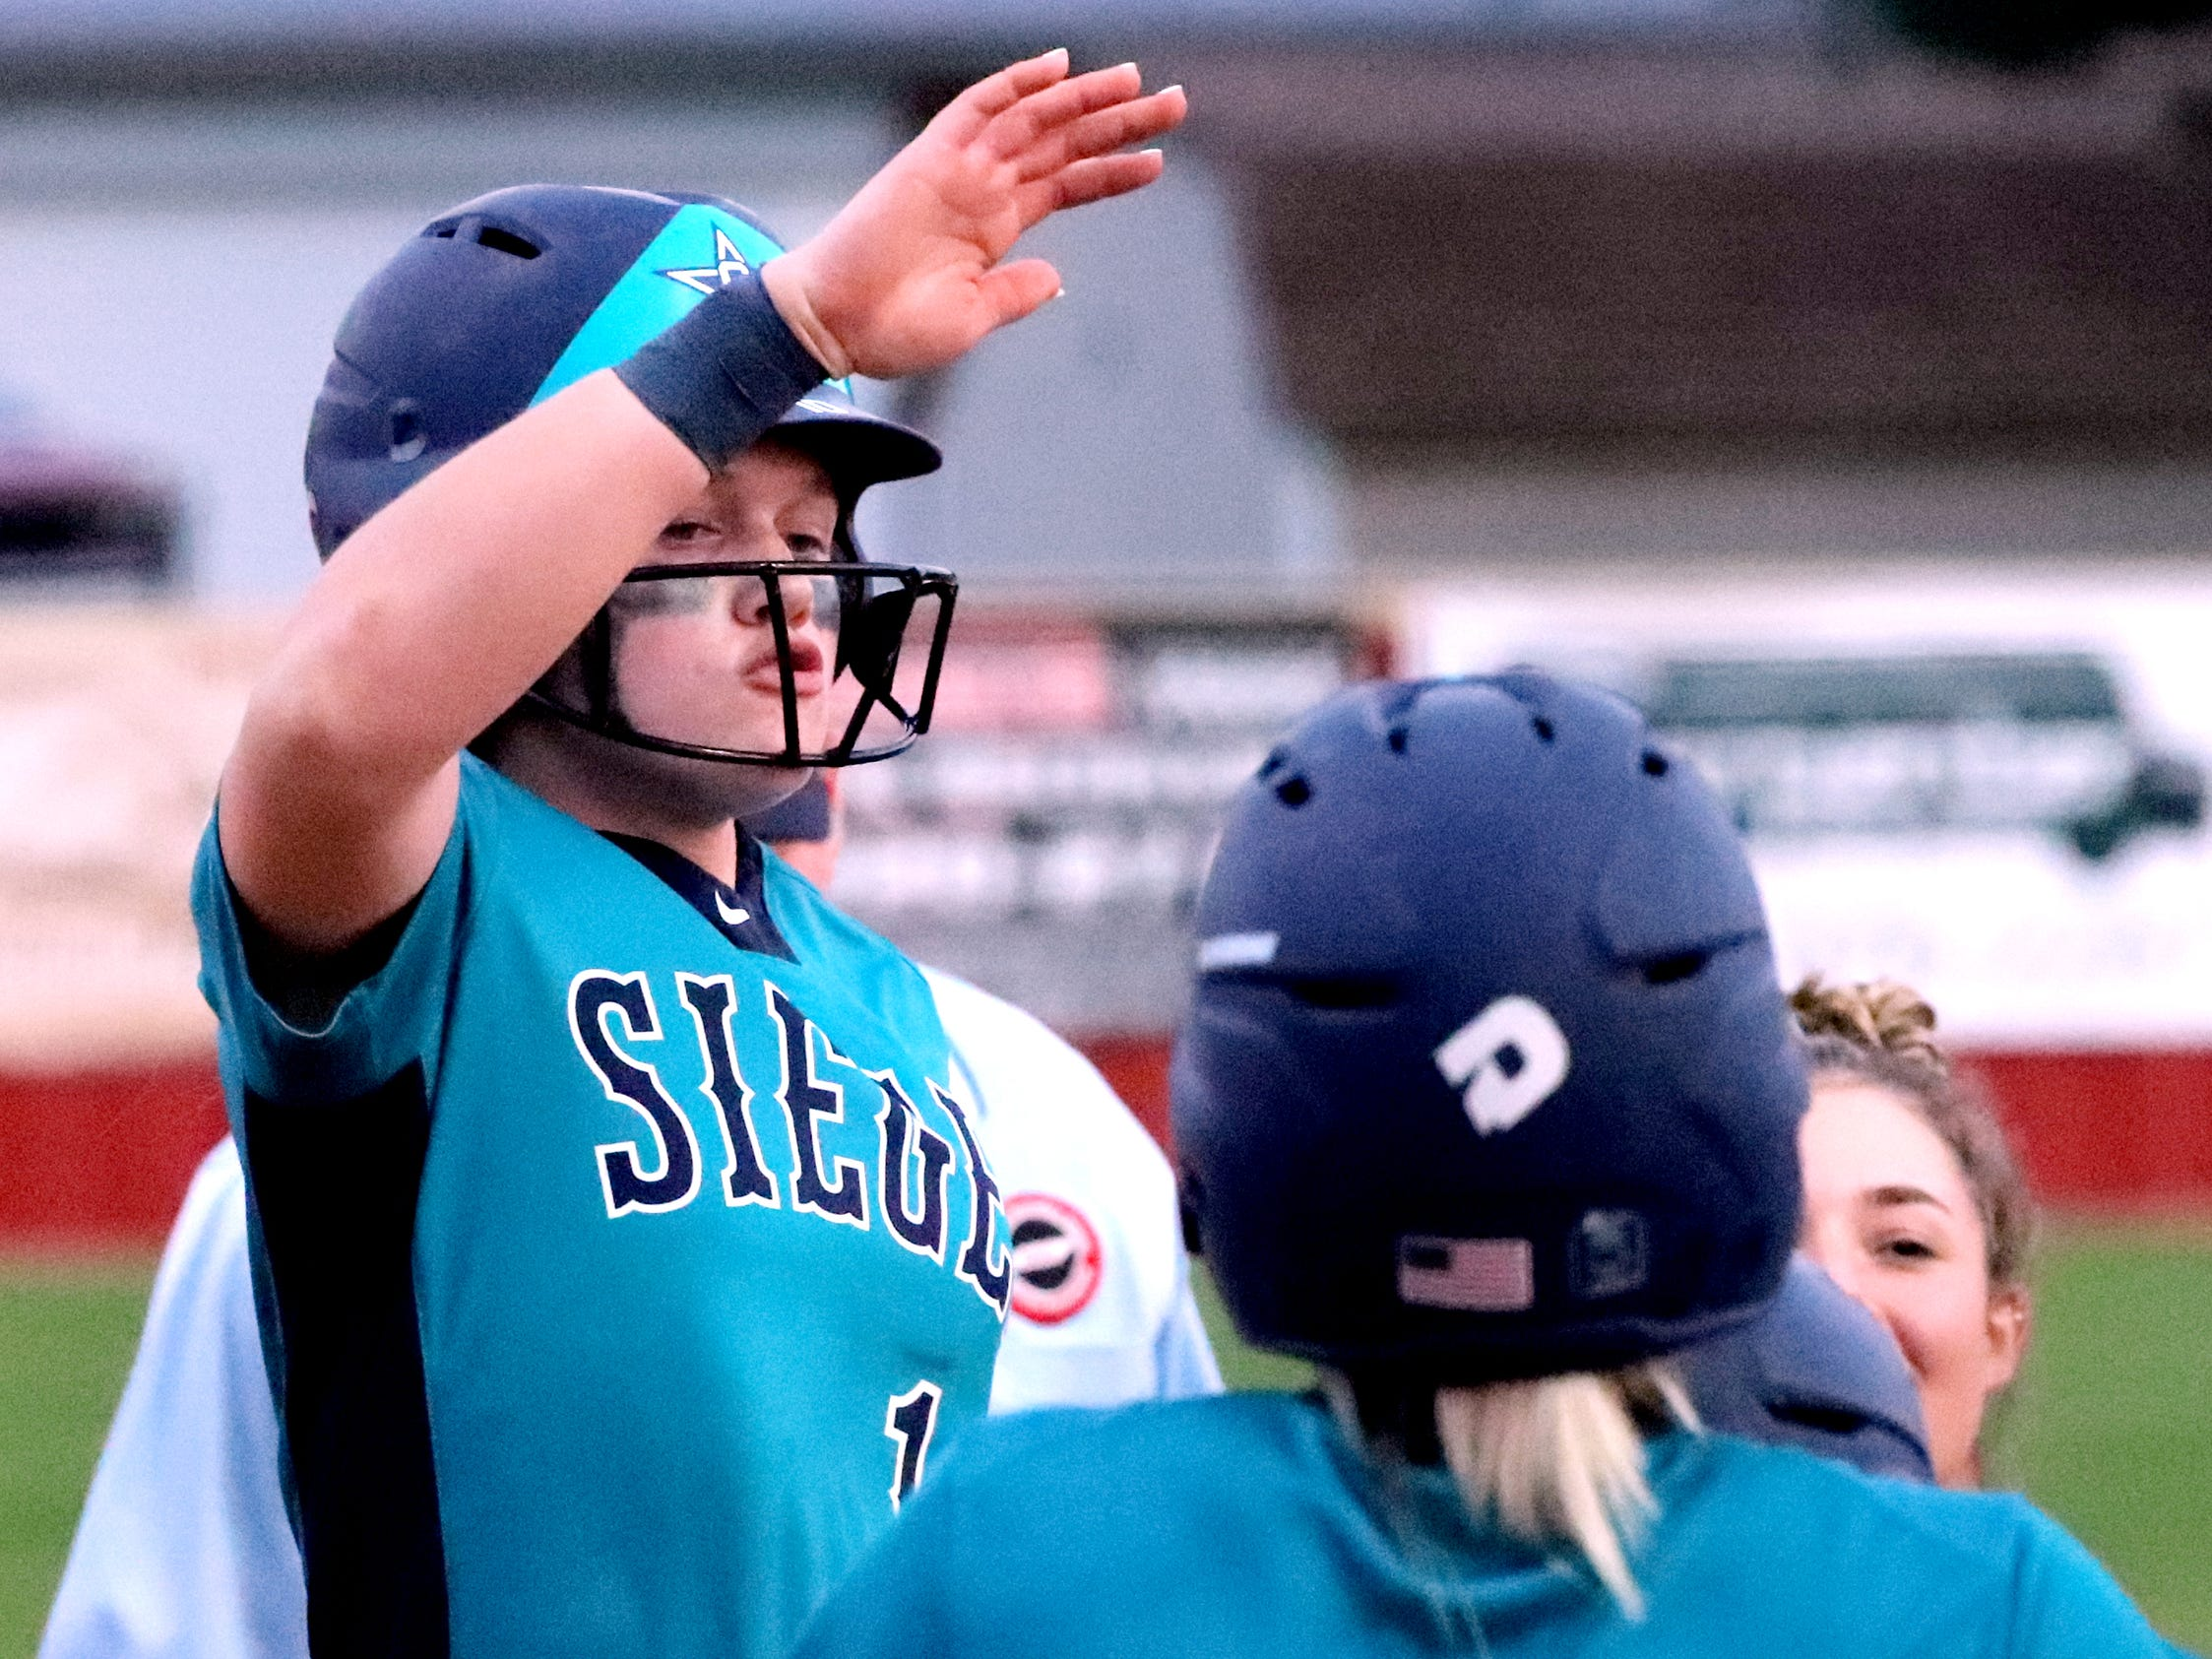 Siegel's Caitlyn McCrary (10) celebrates her home run at home plate with her team during the game against Riverdale on Thursday April 11, 2019, at Riverdale.